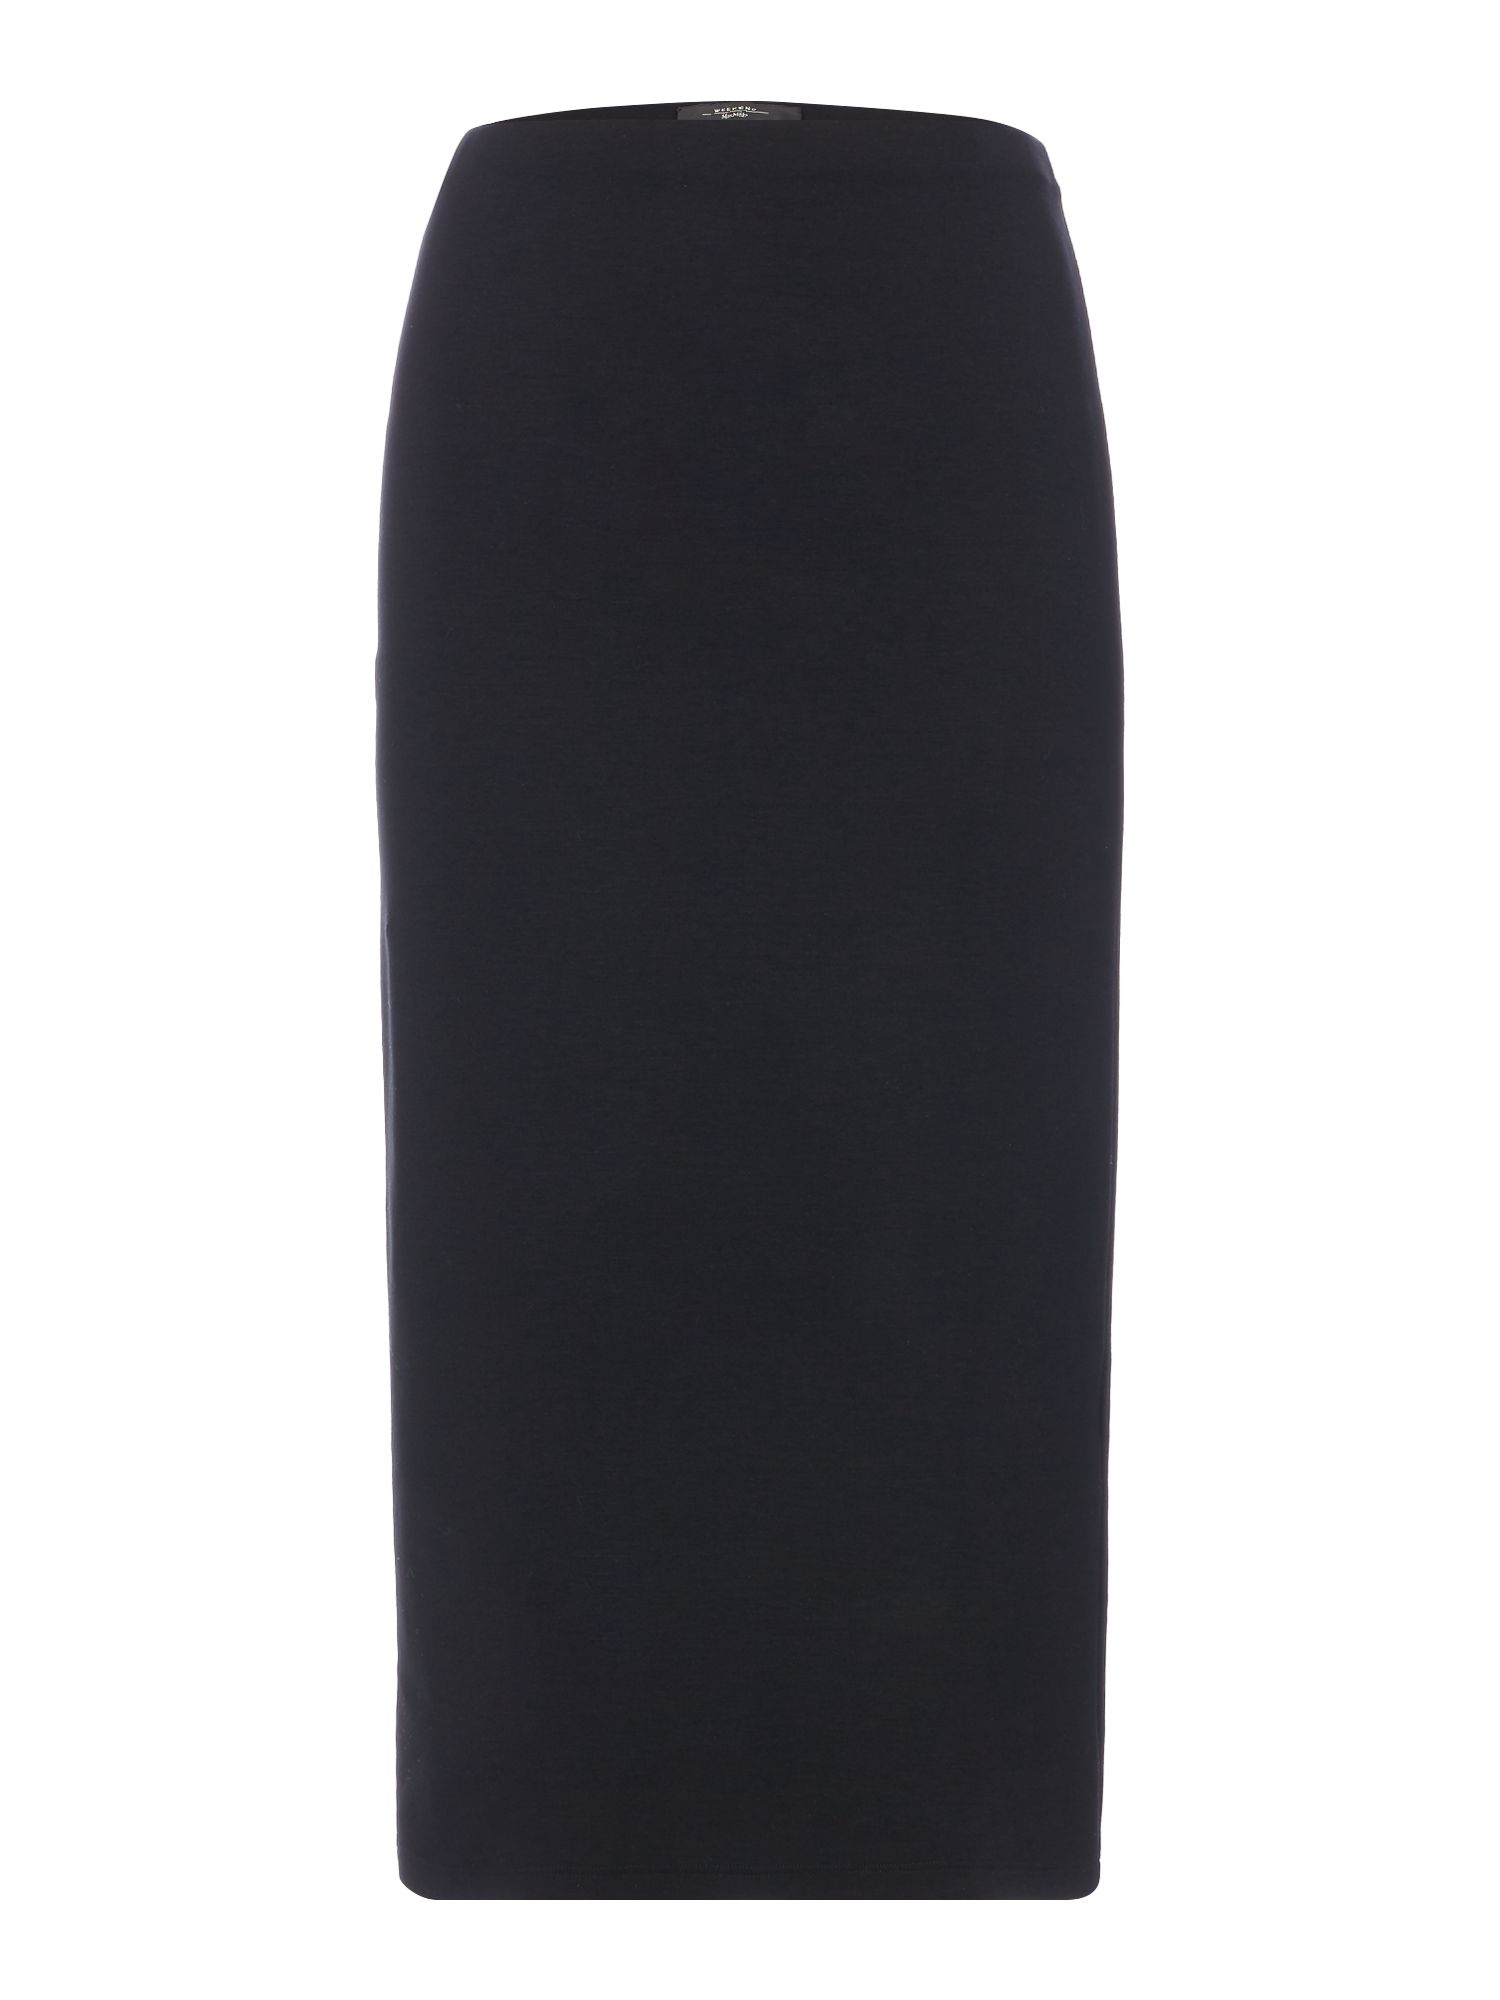 Max Mara Weekend Babila Black Pencil Skirt, Black